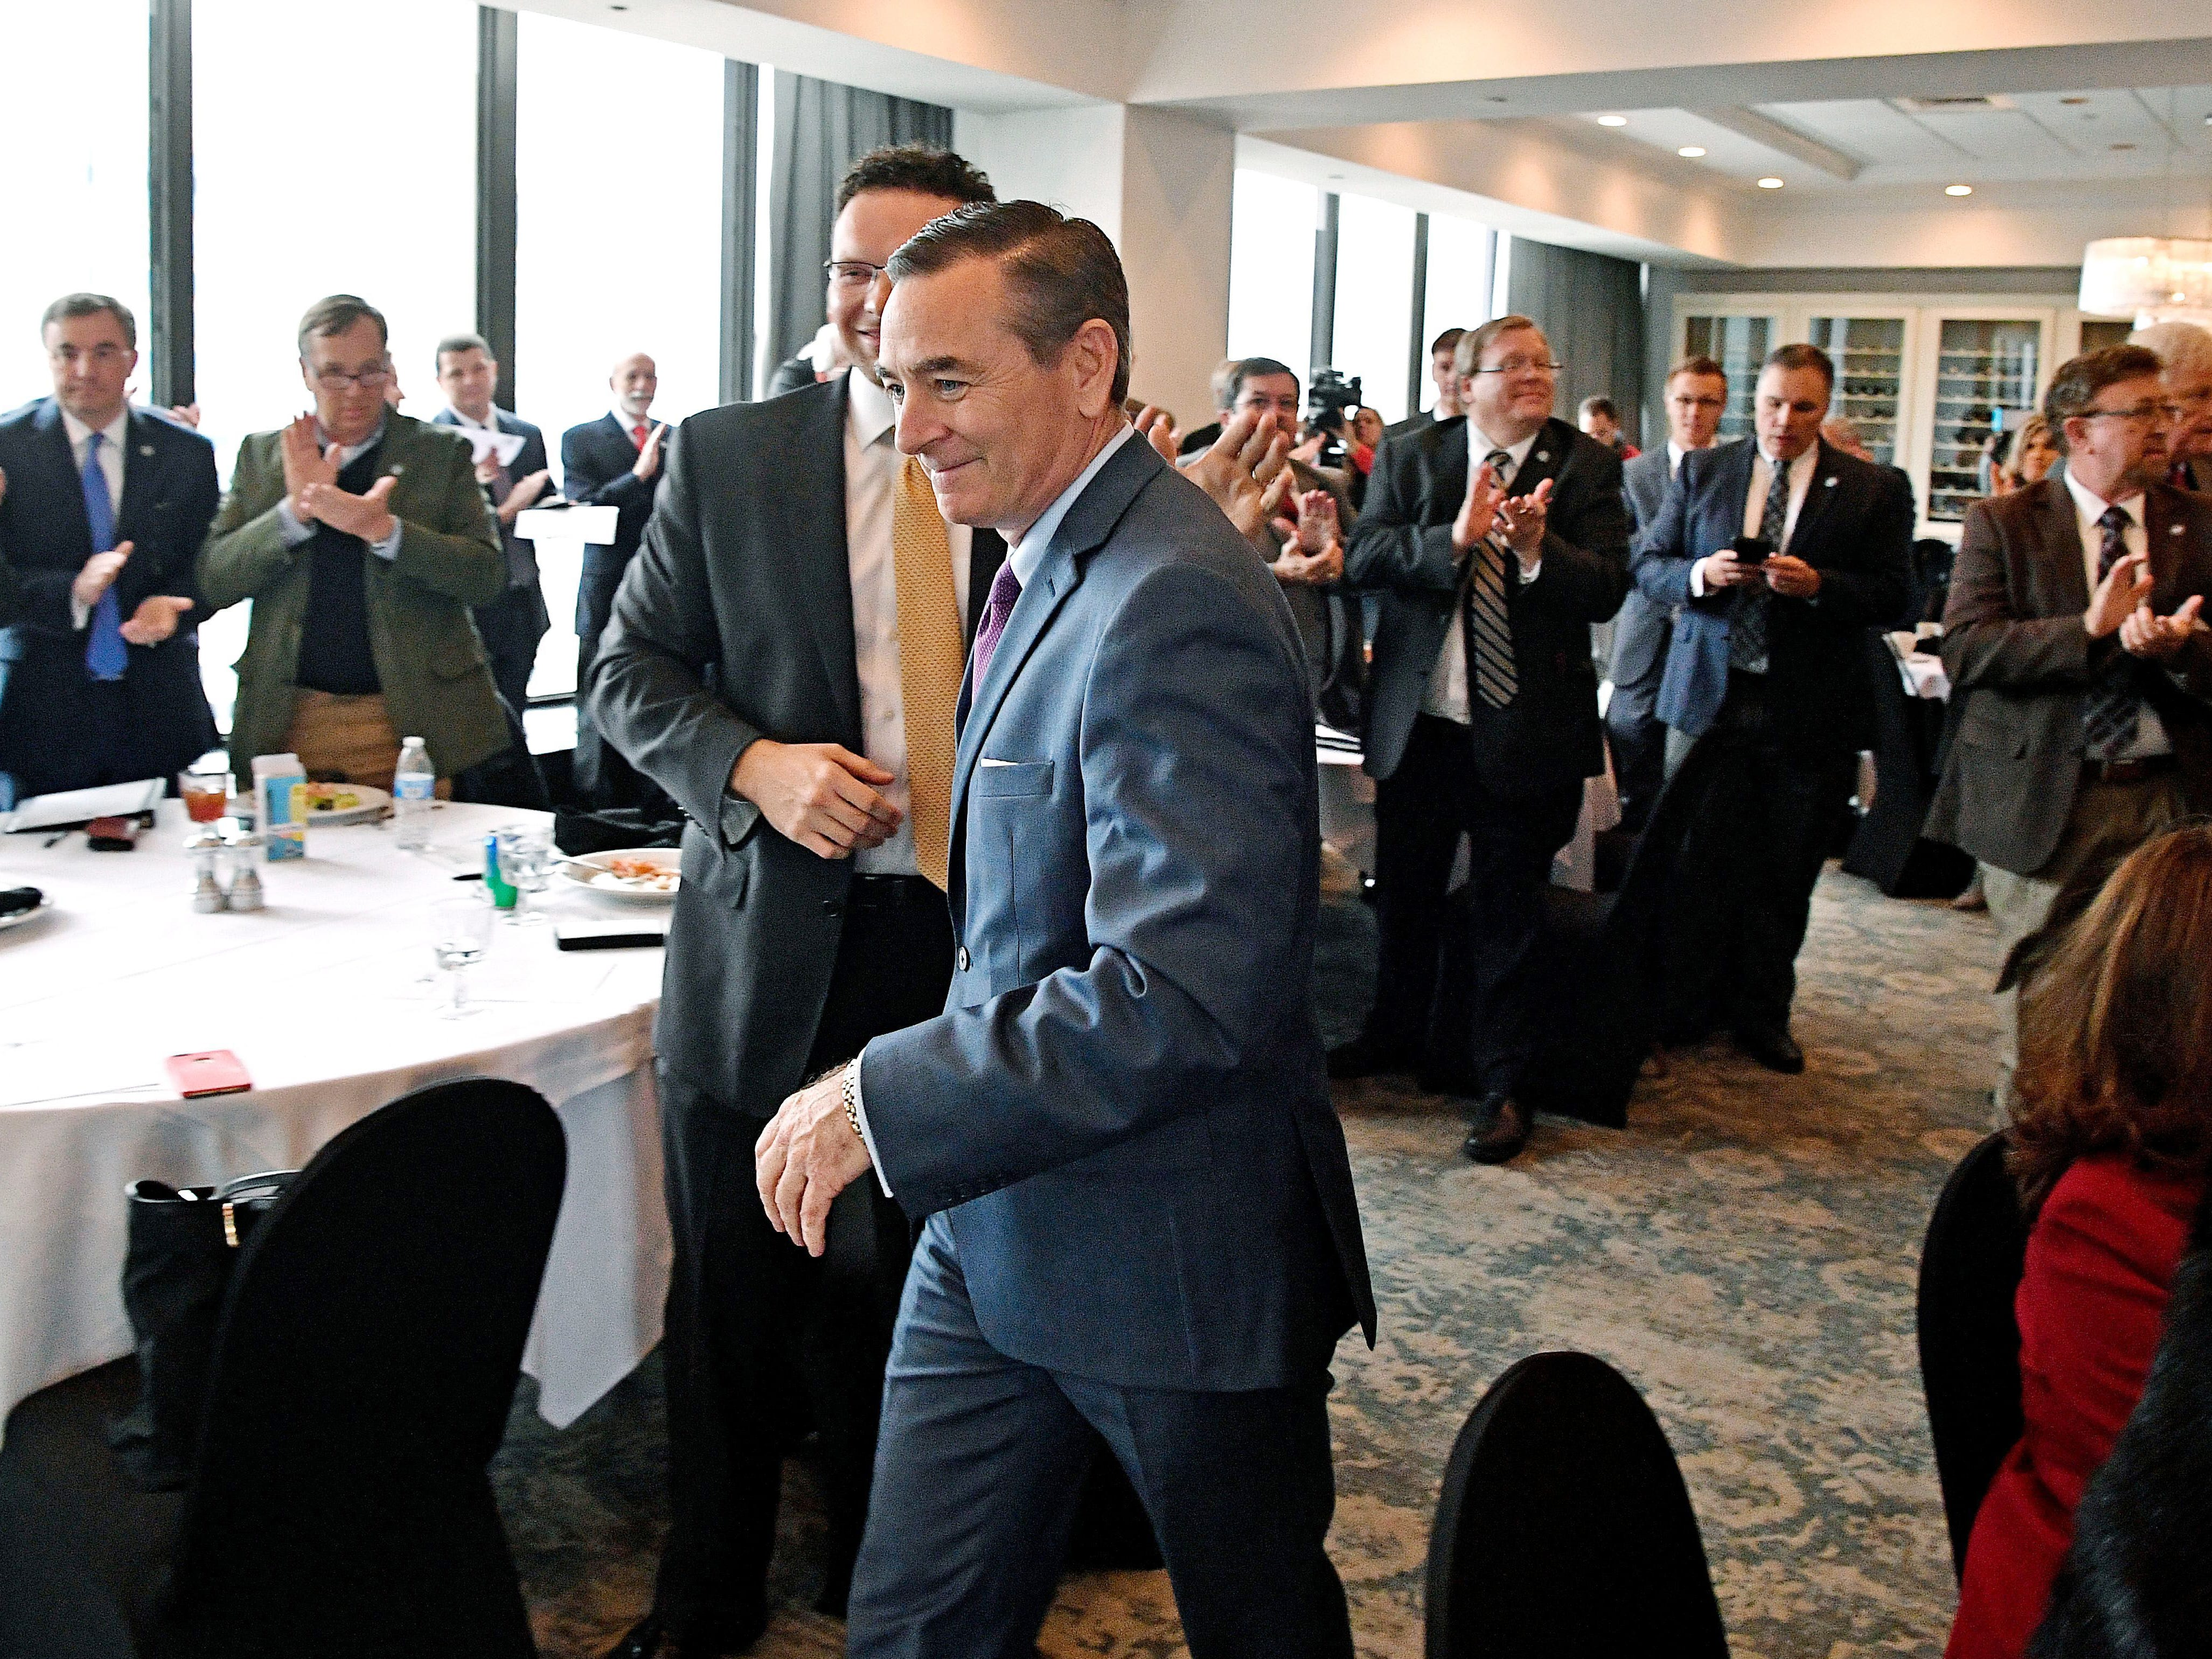 While gathering for the first time since the Nov. 6 midterm election, the House's 73 Republicans choose Franklin lawmaker Glen Casada to be their nominee for speaker Nov. 22, 2018, in Nashville.